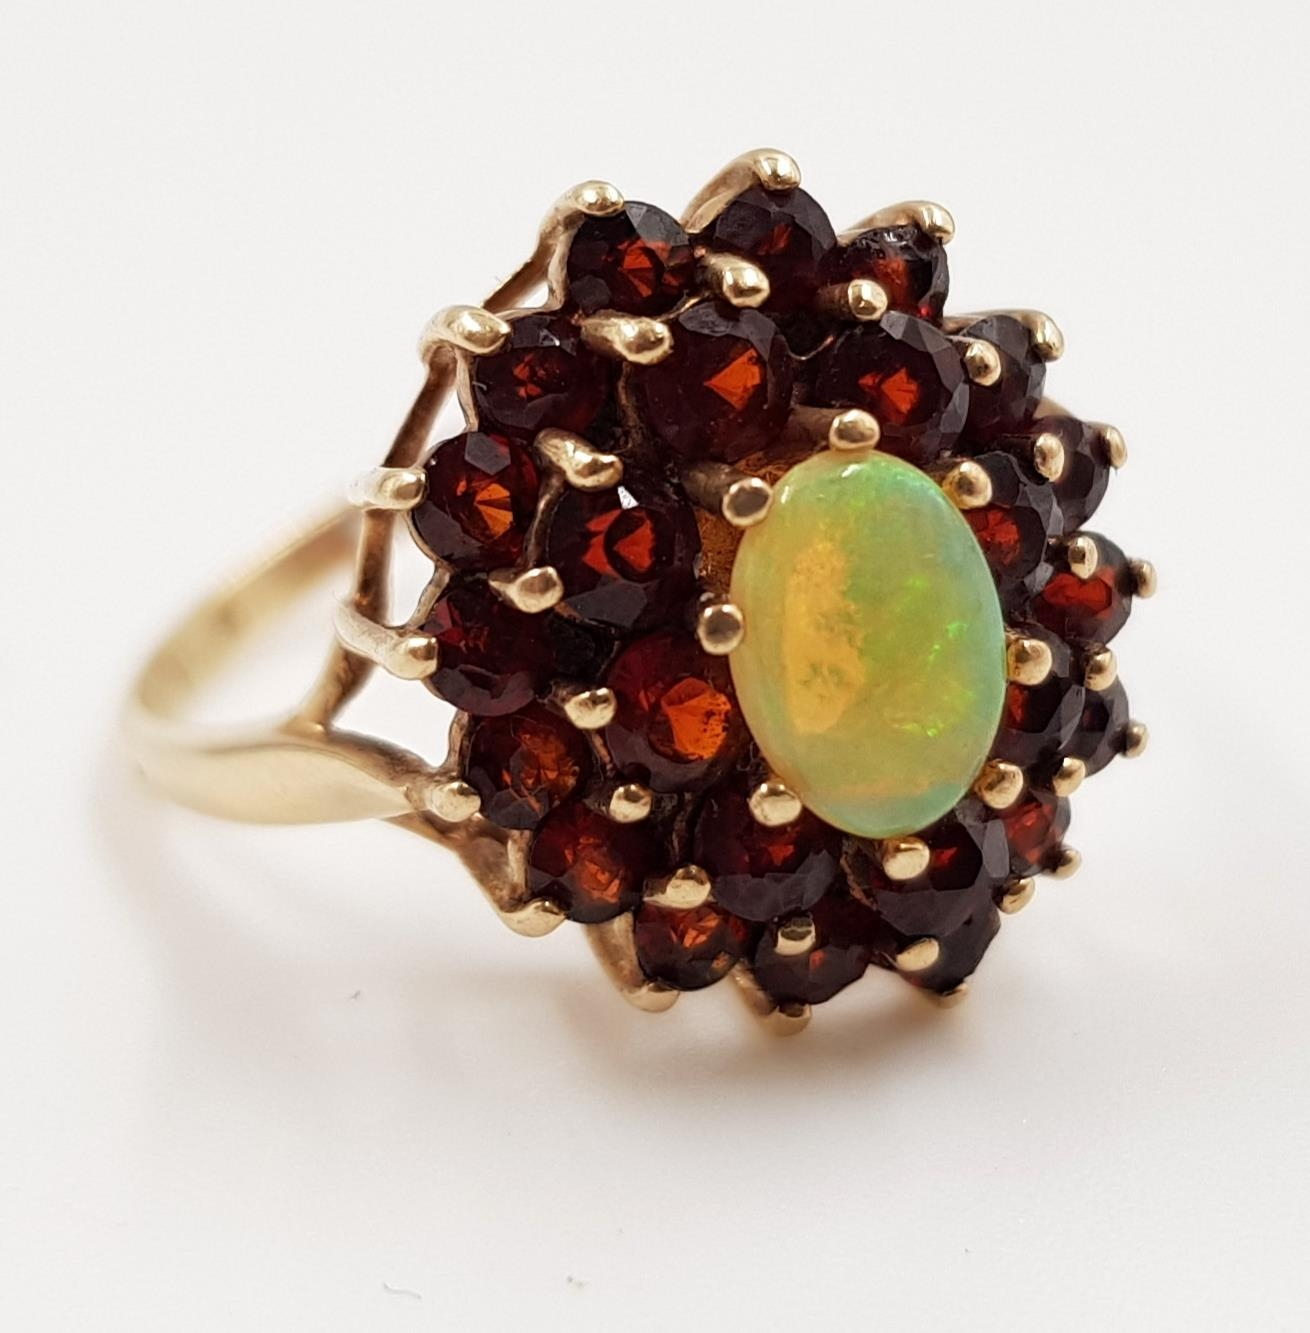 A 9ct gold, fire opal and garnet stone cluster ladies ring. 3.4g total weight. Size P.